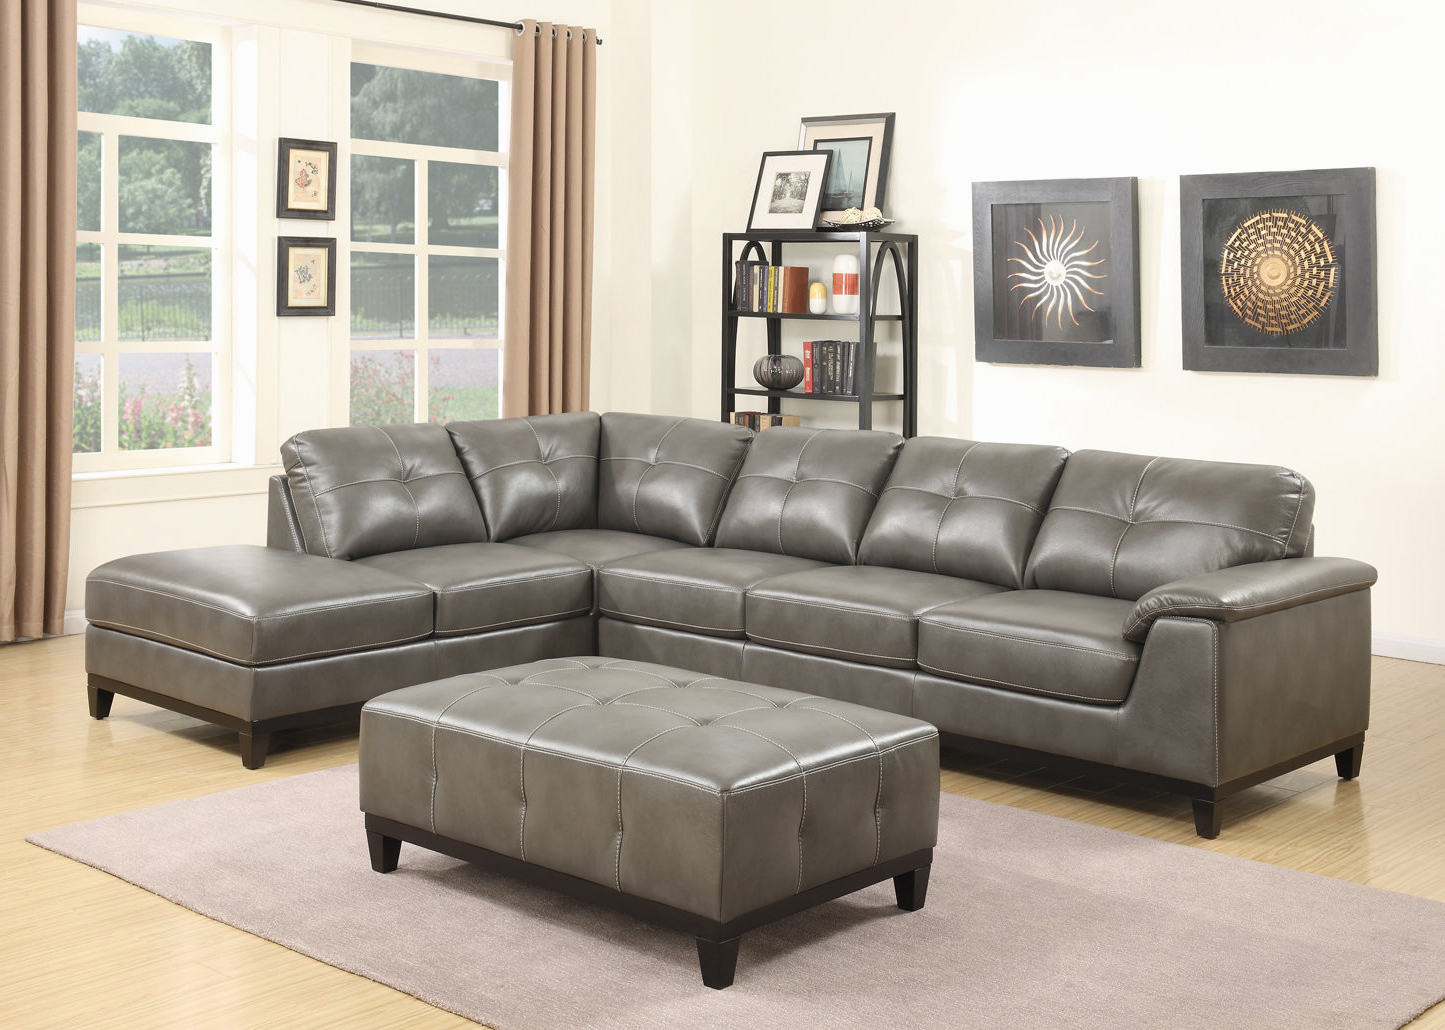 Living Room Sofa With Chaise Beautiful Trent Austin Design Lonato For Recent Aquarius Light Grey 2 Piece Sectionals With Laf Chaise (View 9 of 20)